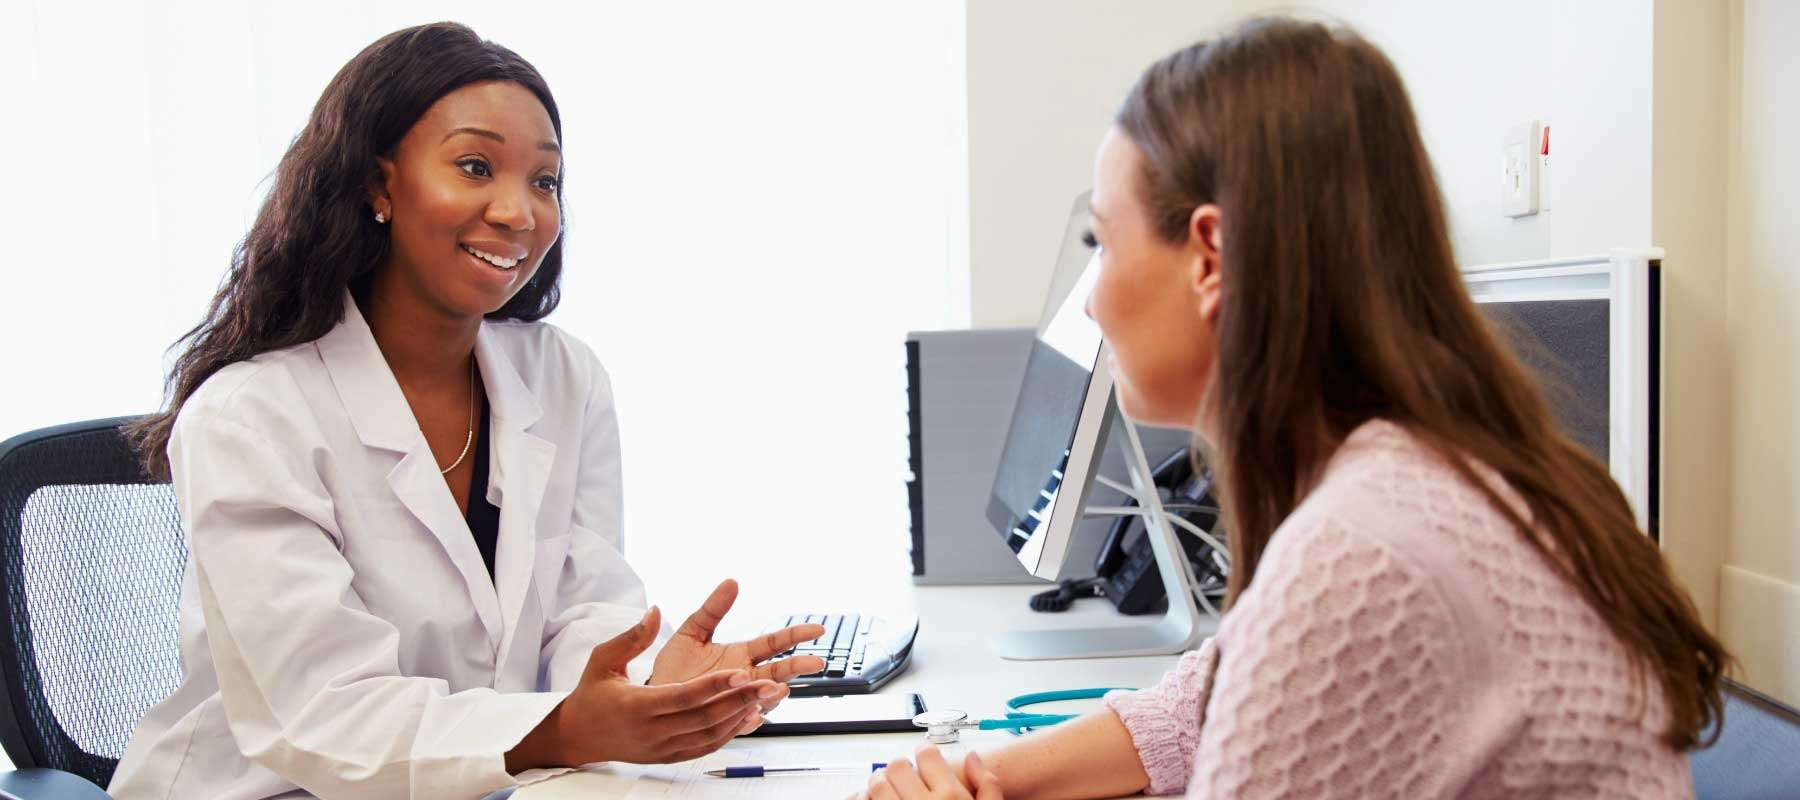 medical provider talking to patient